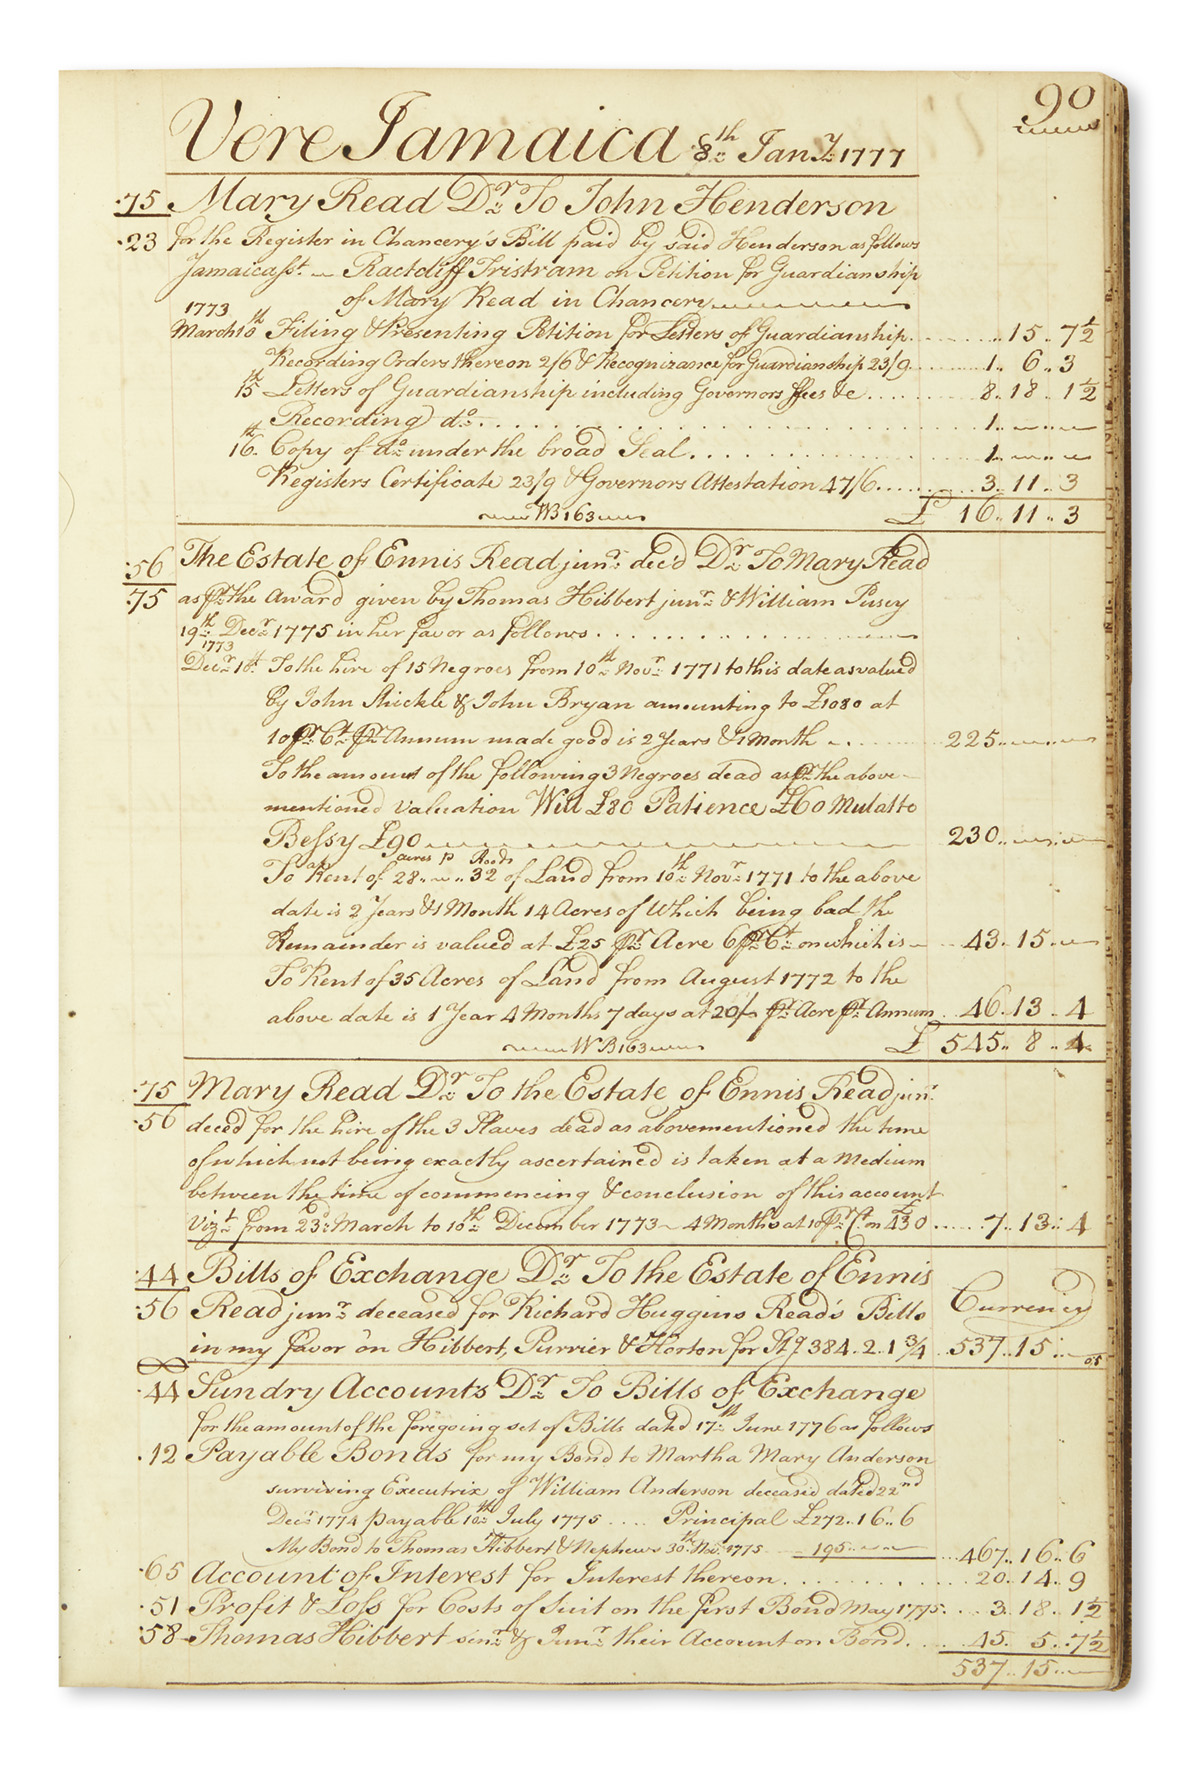 (SLAVERY AND ABOLITION--JAMAICA.) An early account journal for a plantation estate on the southern coast of Jamaica.